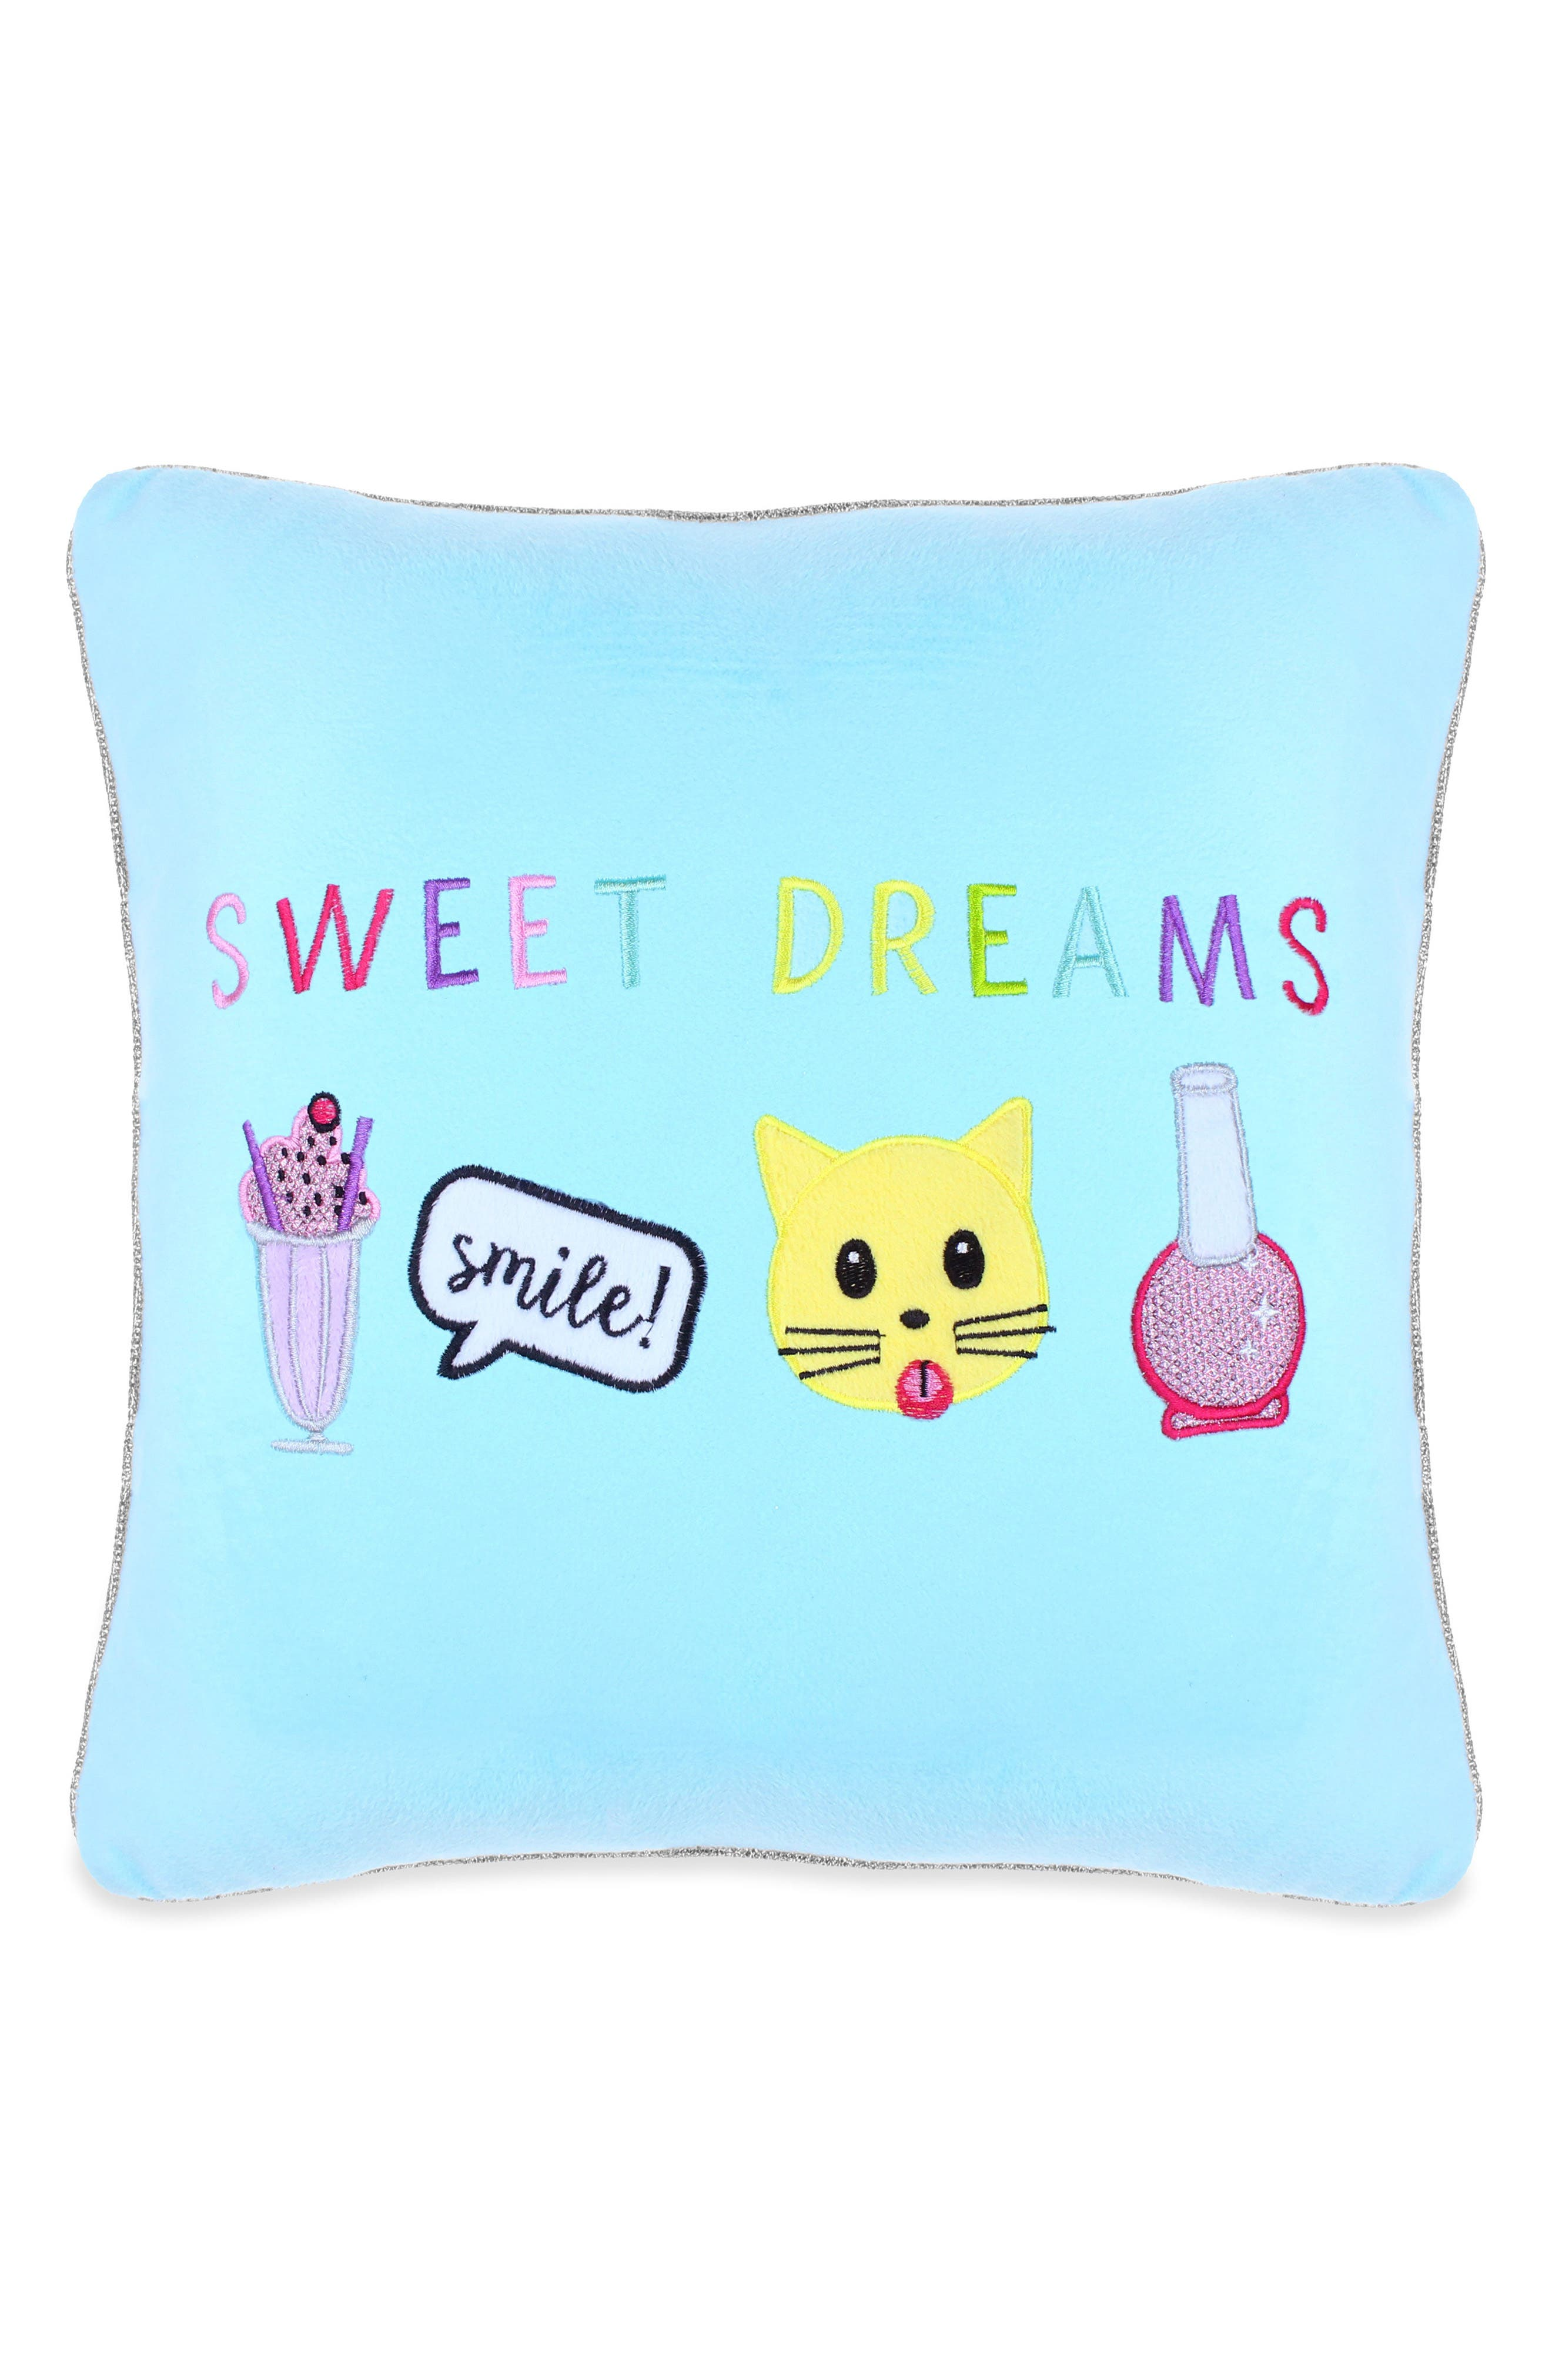 Capelli New York Sweet Dreams Appliquéd Pillow